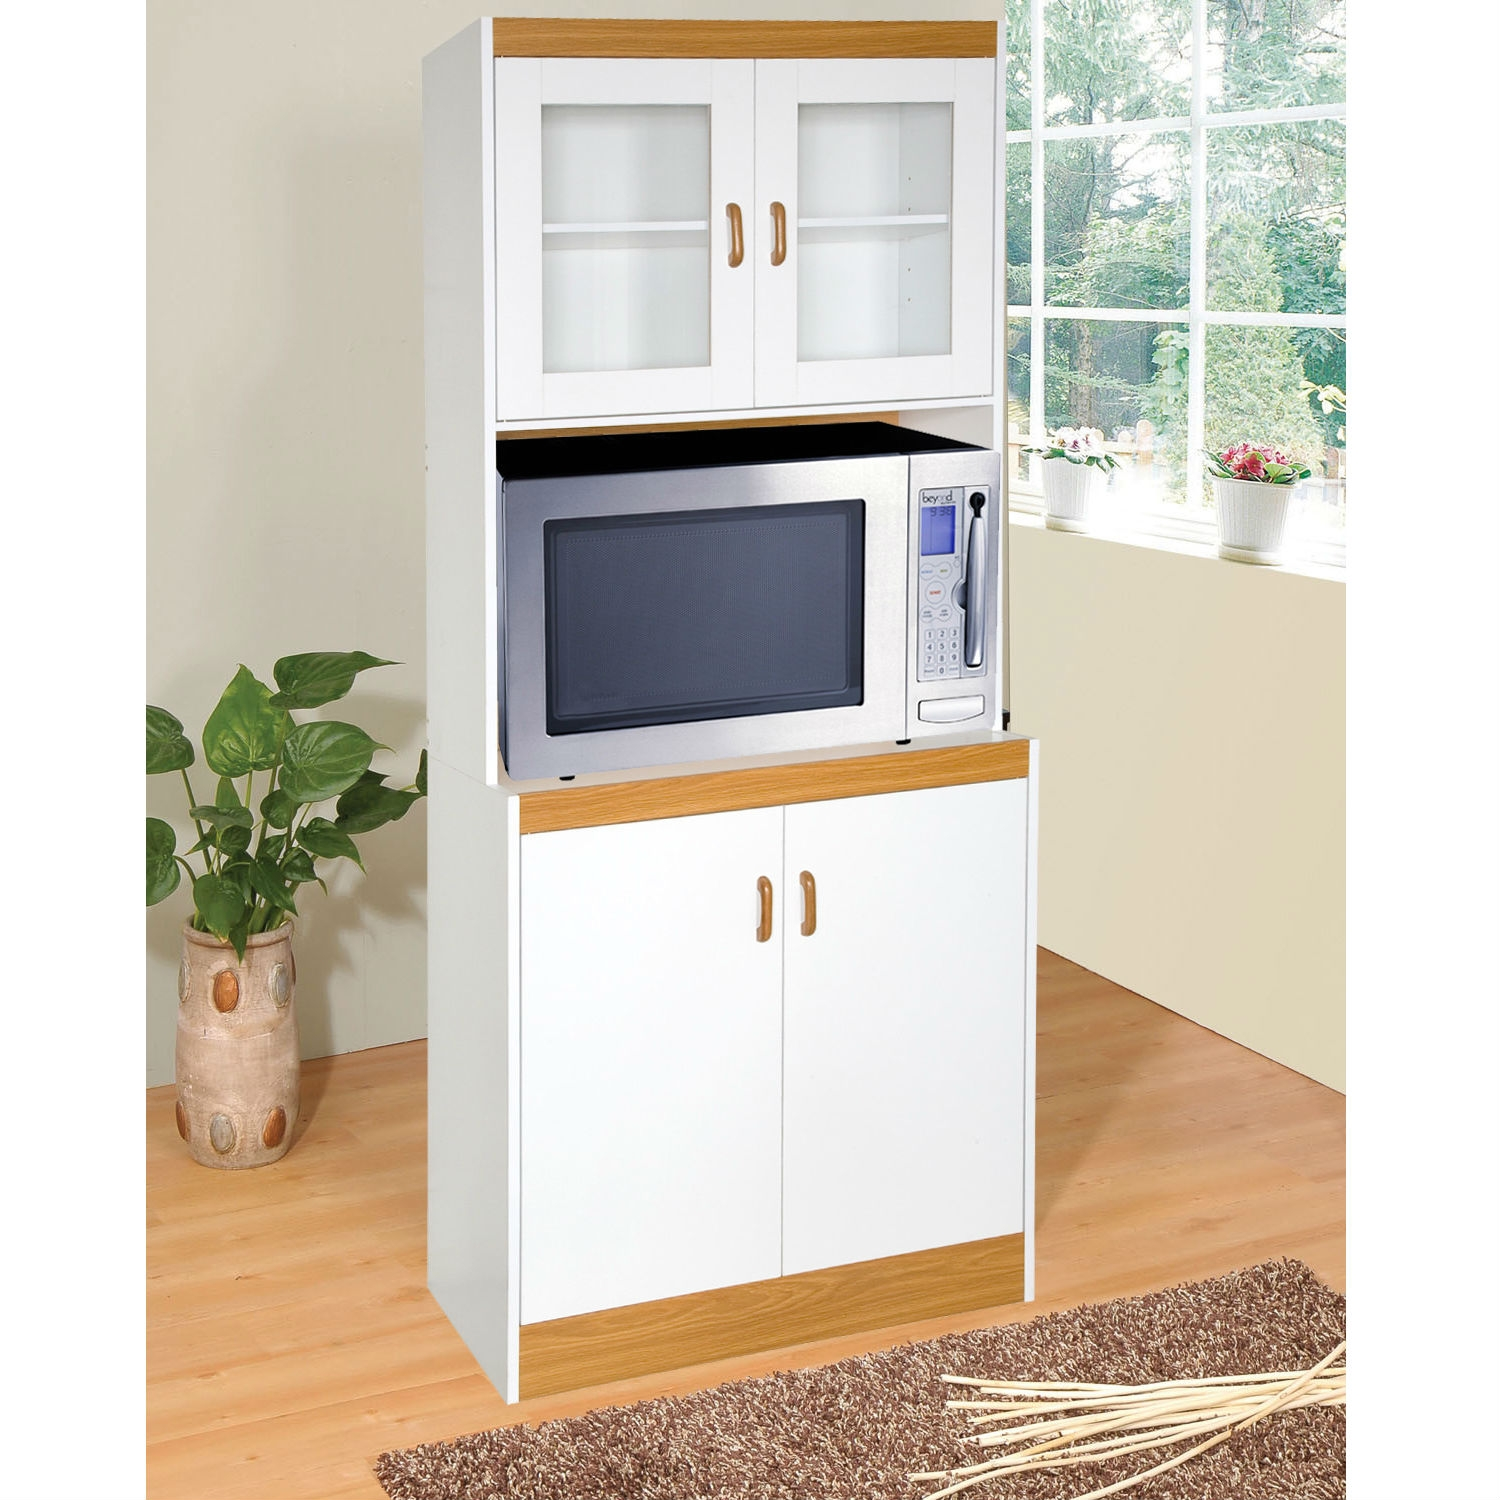 Tall Kitchen Storage Cabinet Cupboard with Microwave Space ...